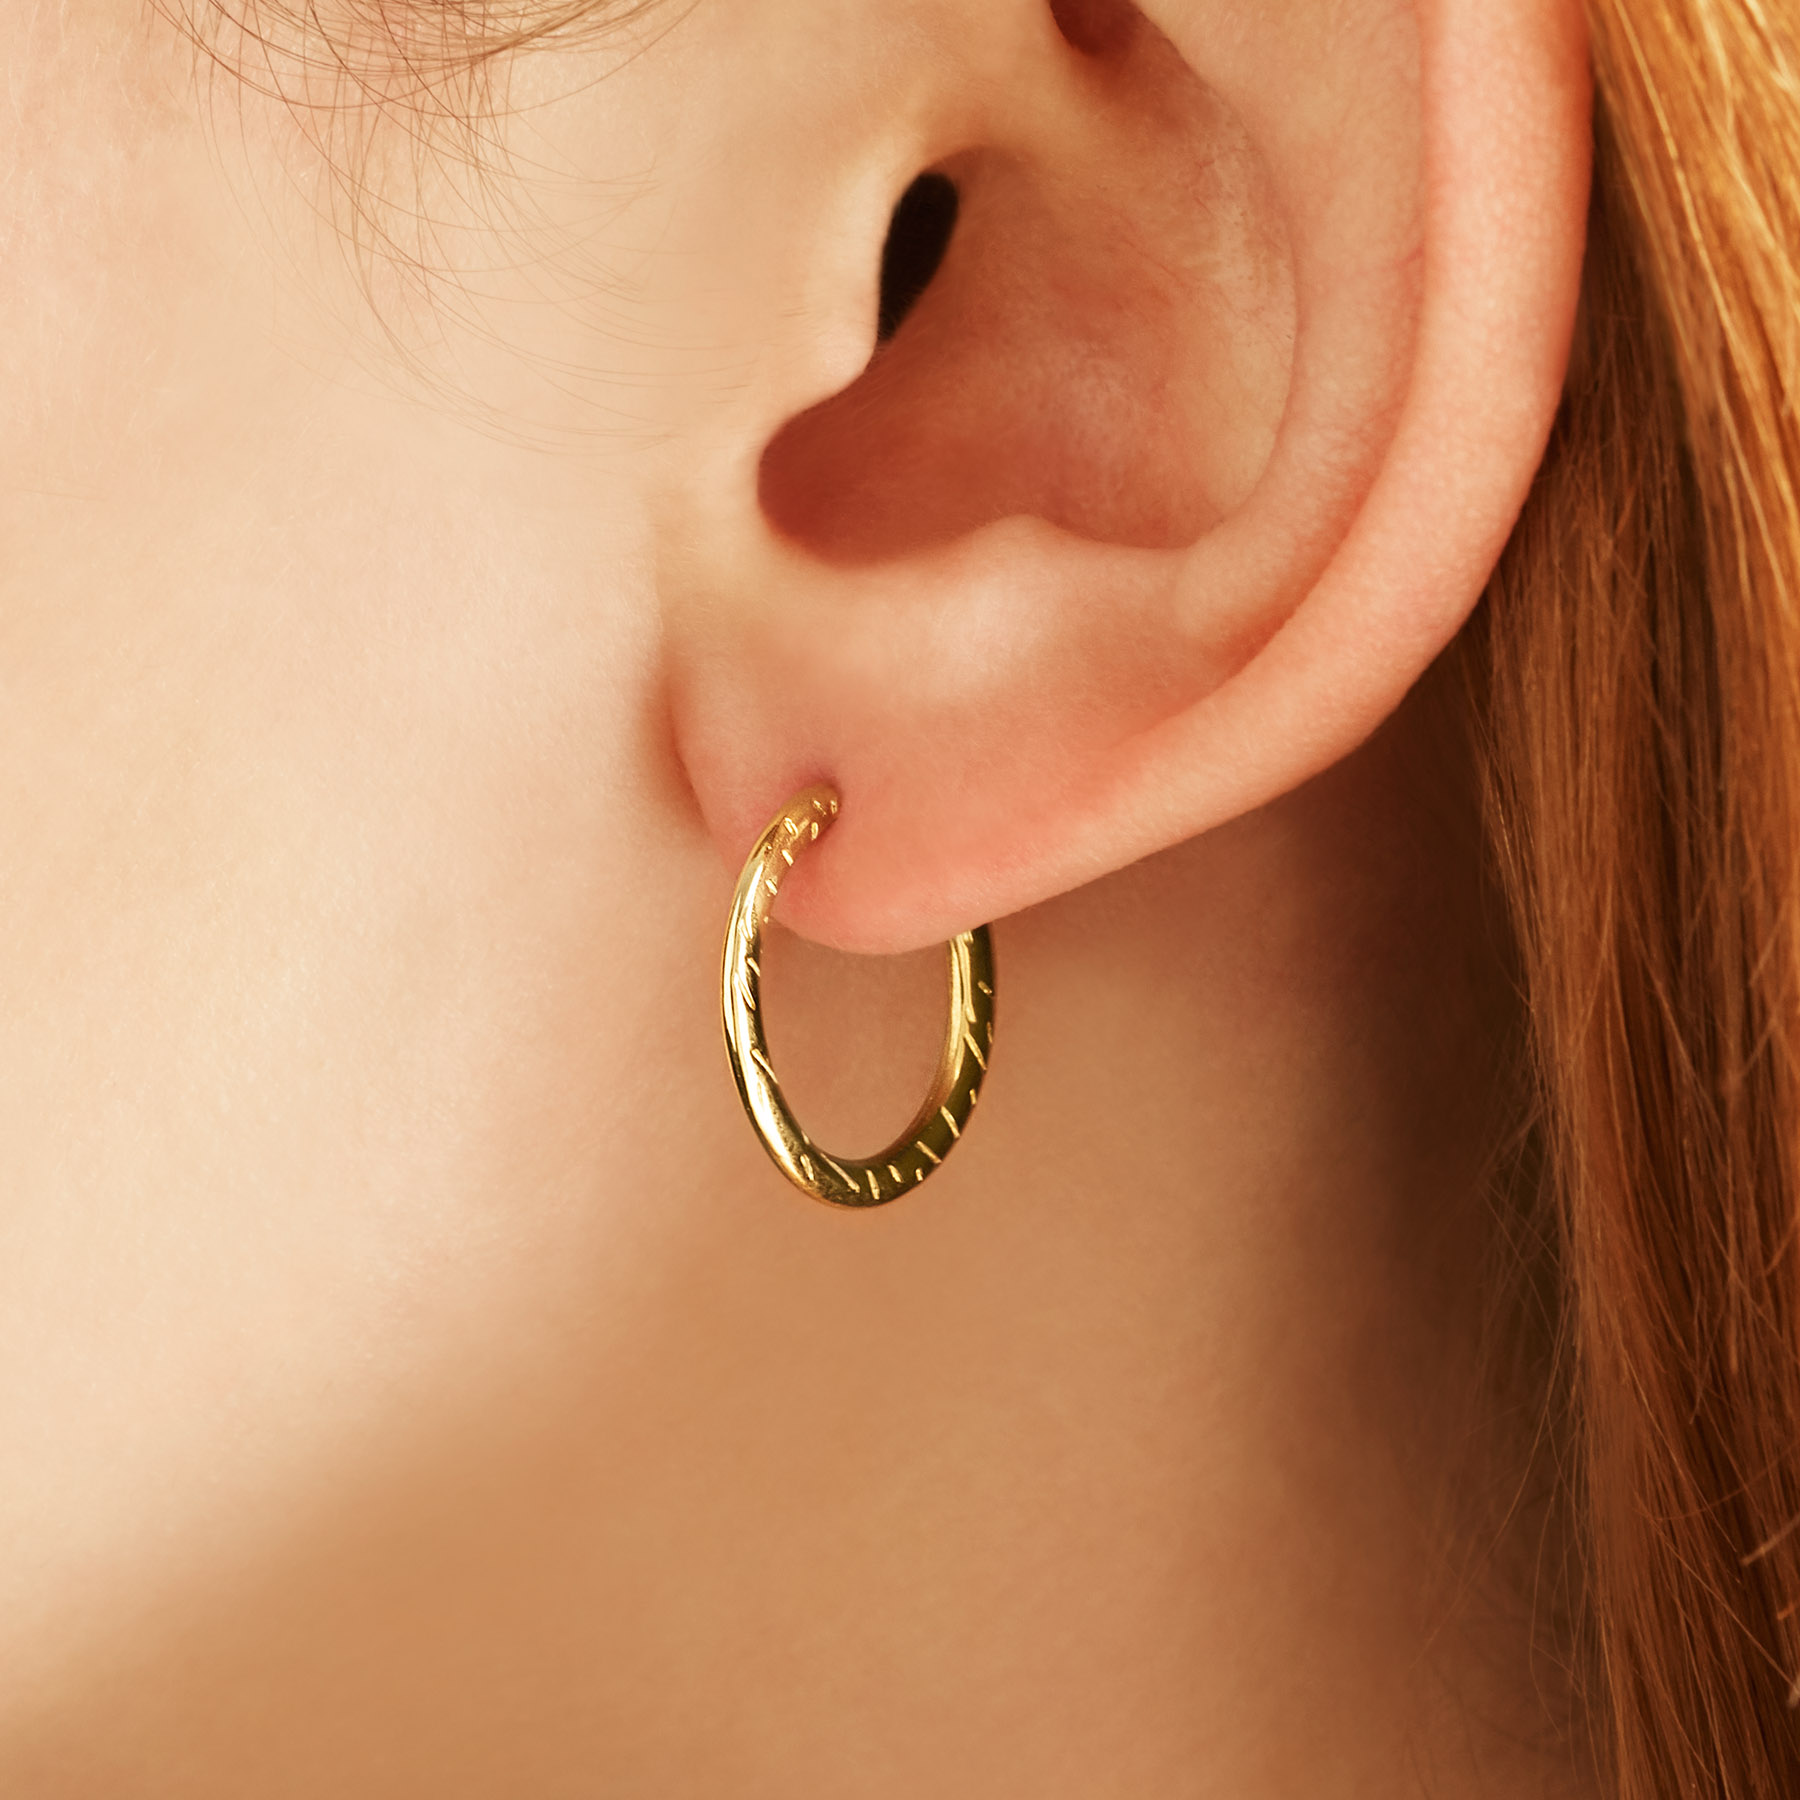 fur-hoop-earrings-FC9A-3.jpg